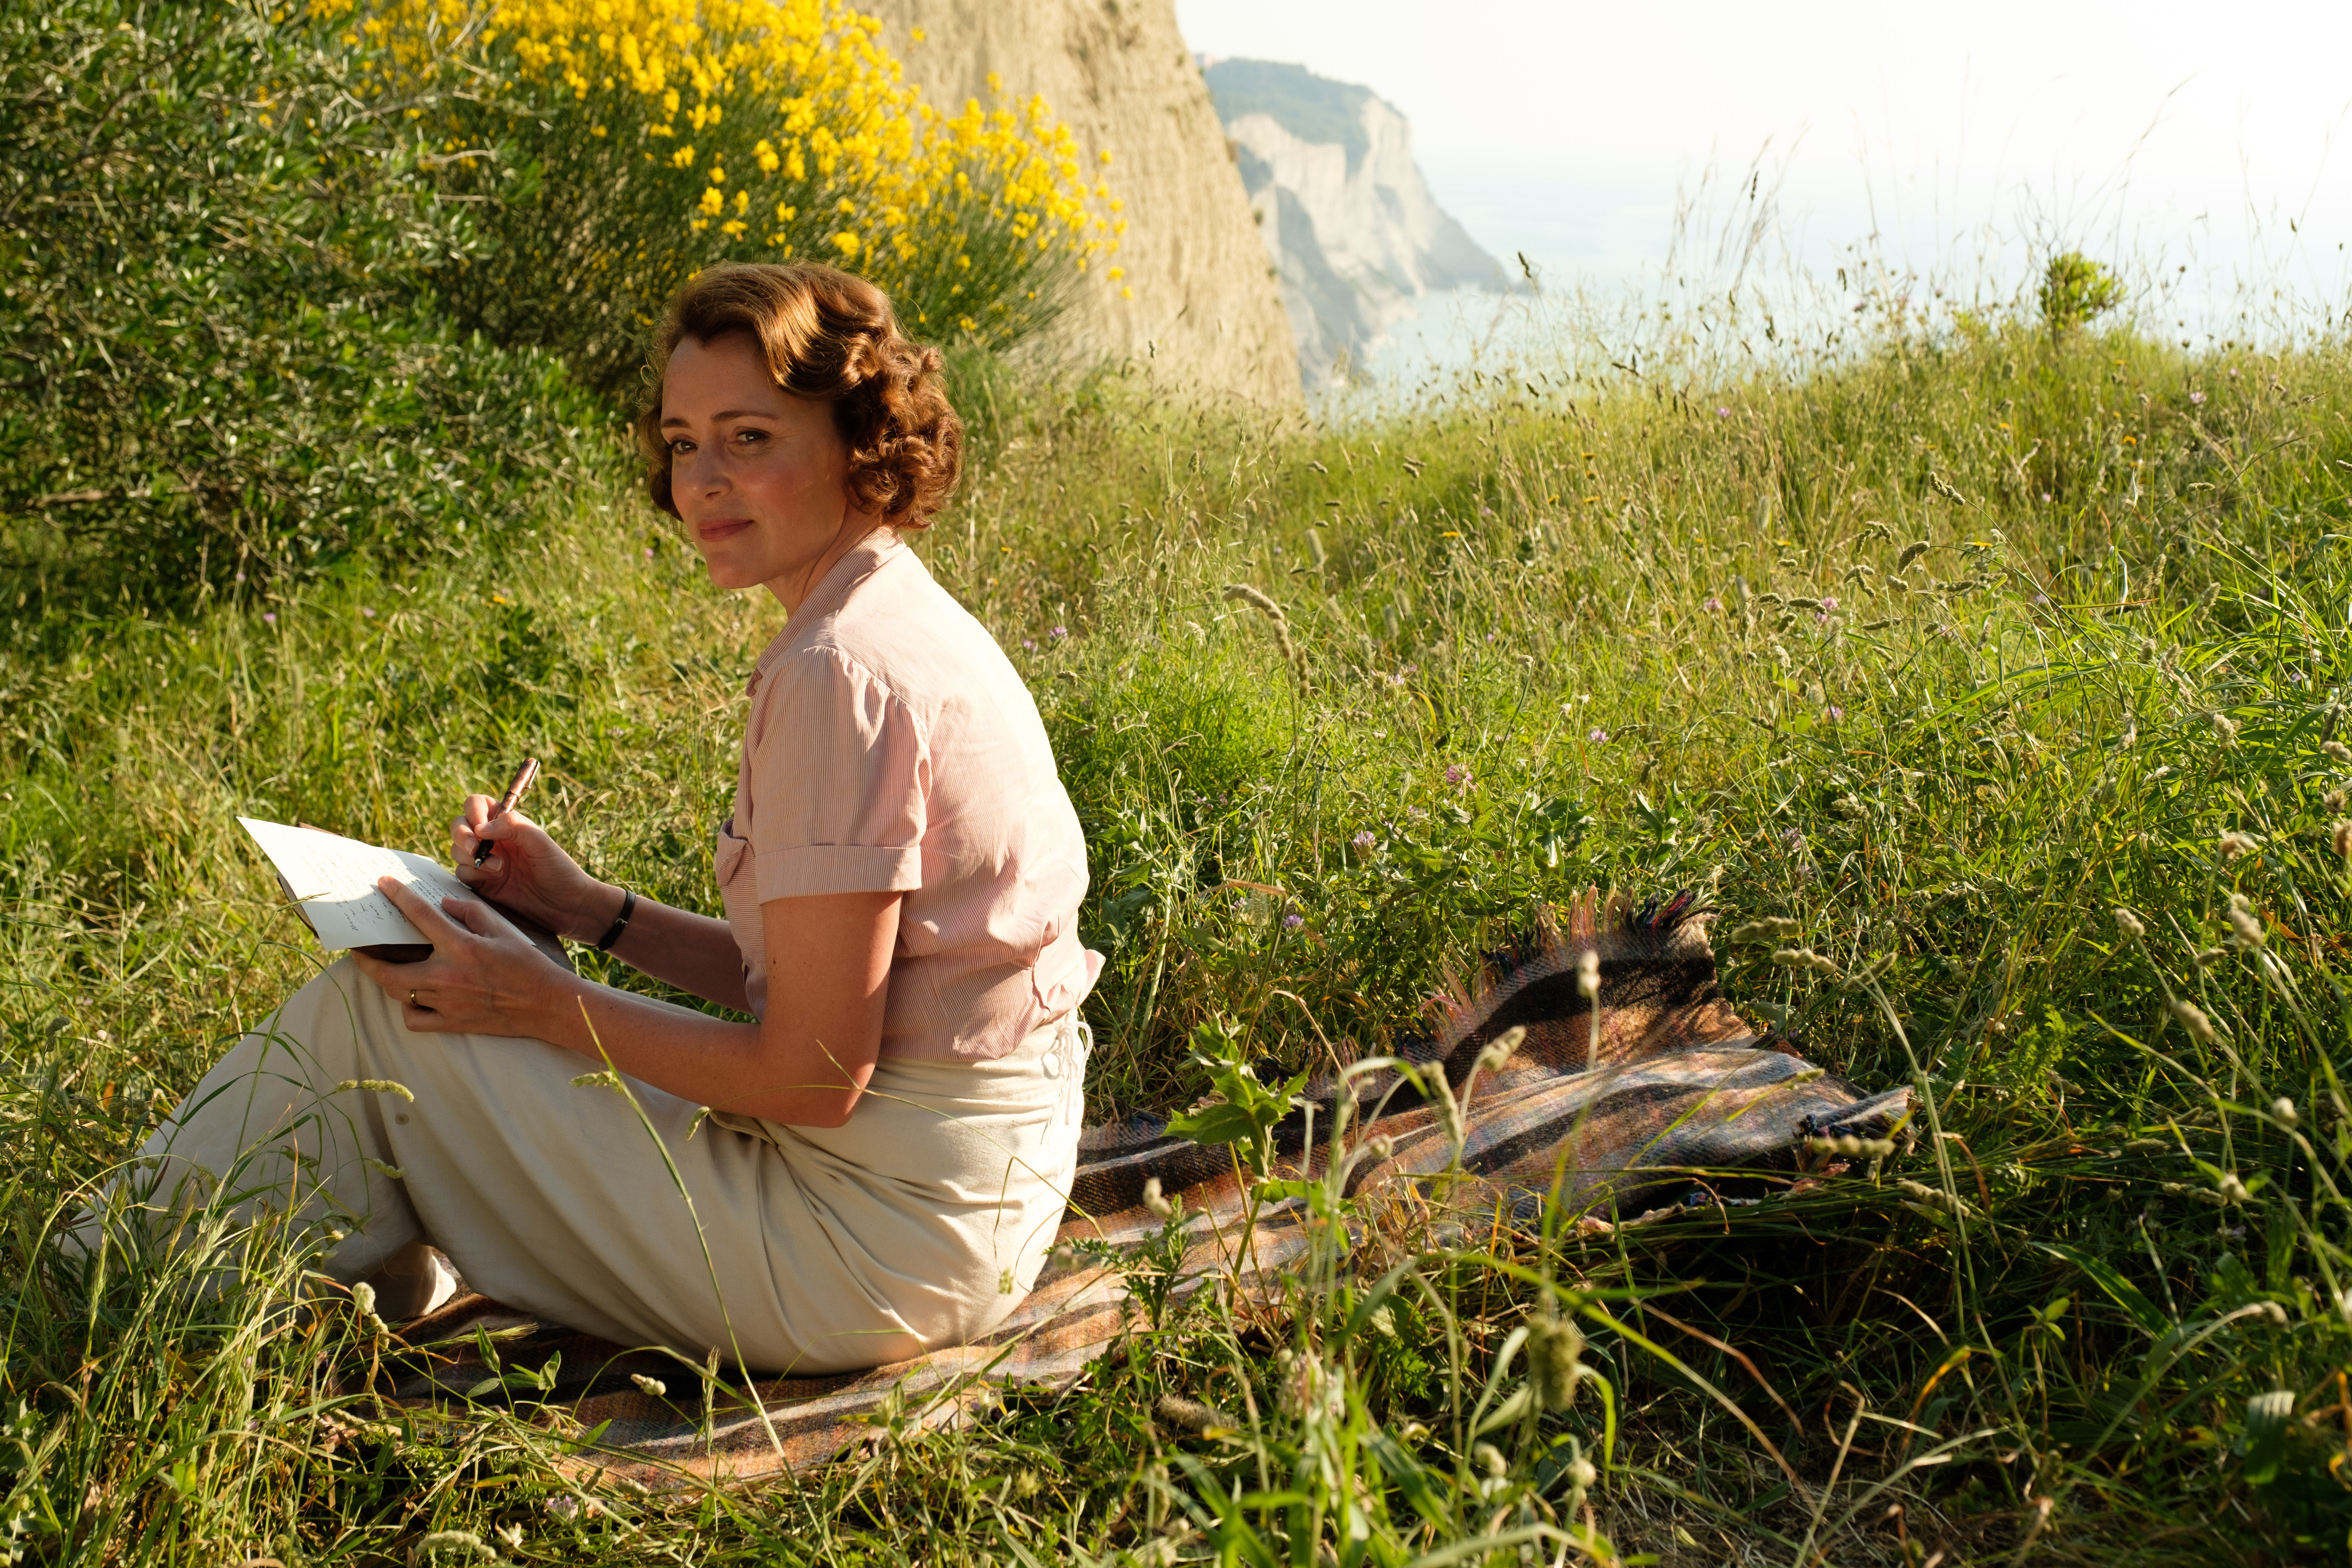 girl in a field with cliff in the background, writing